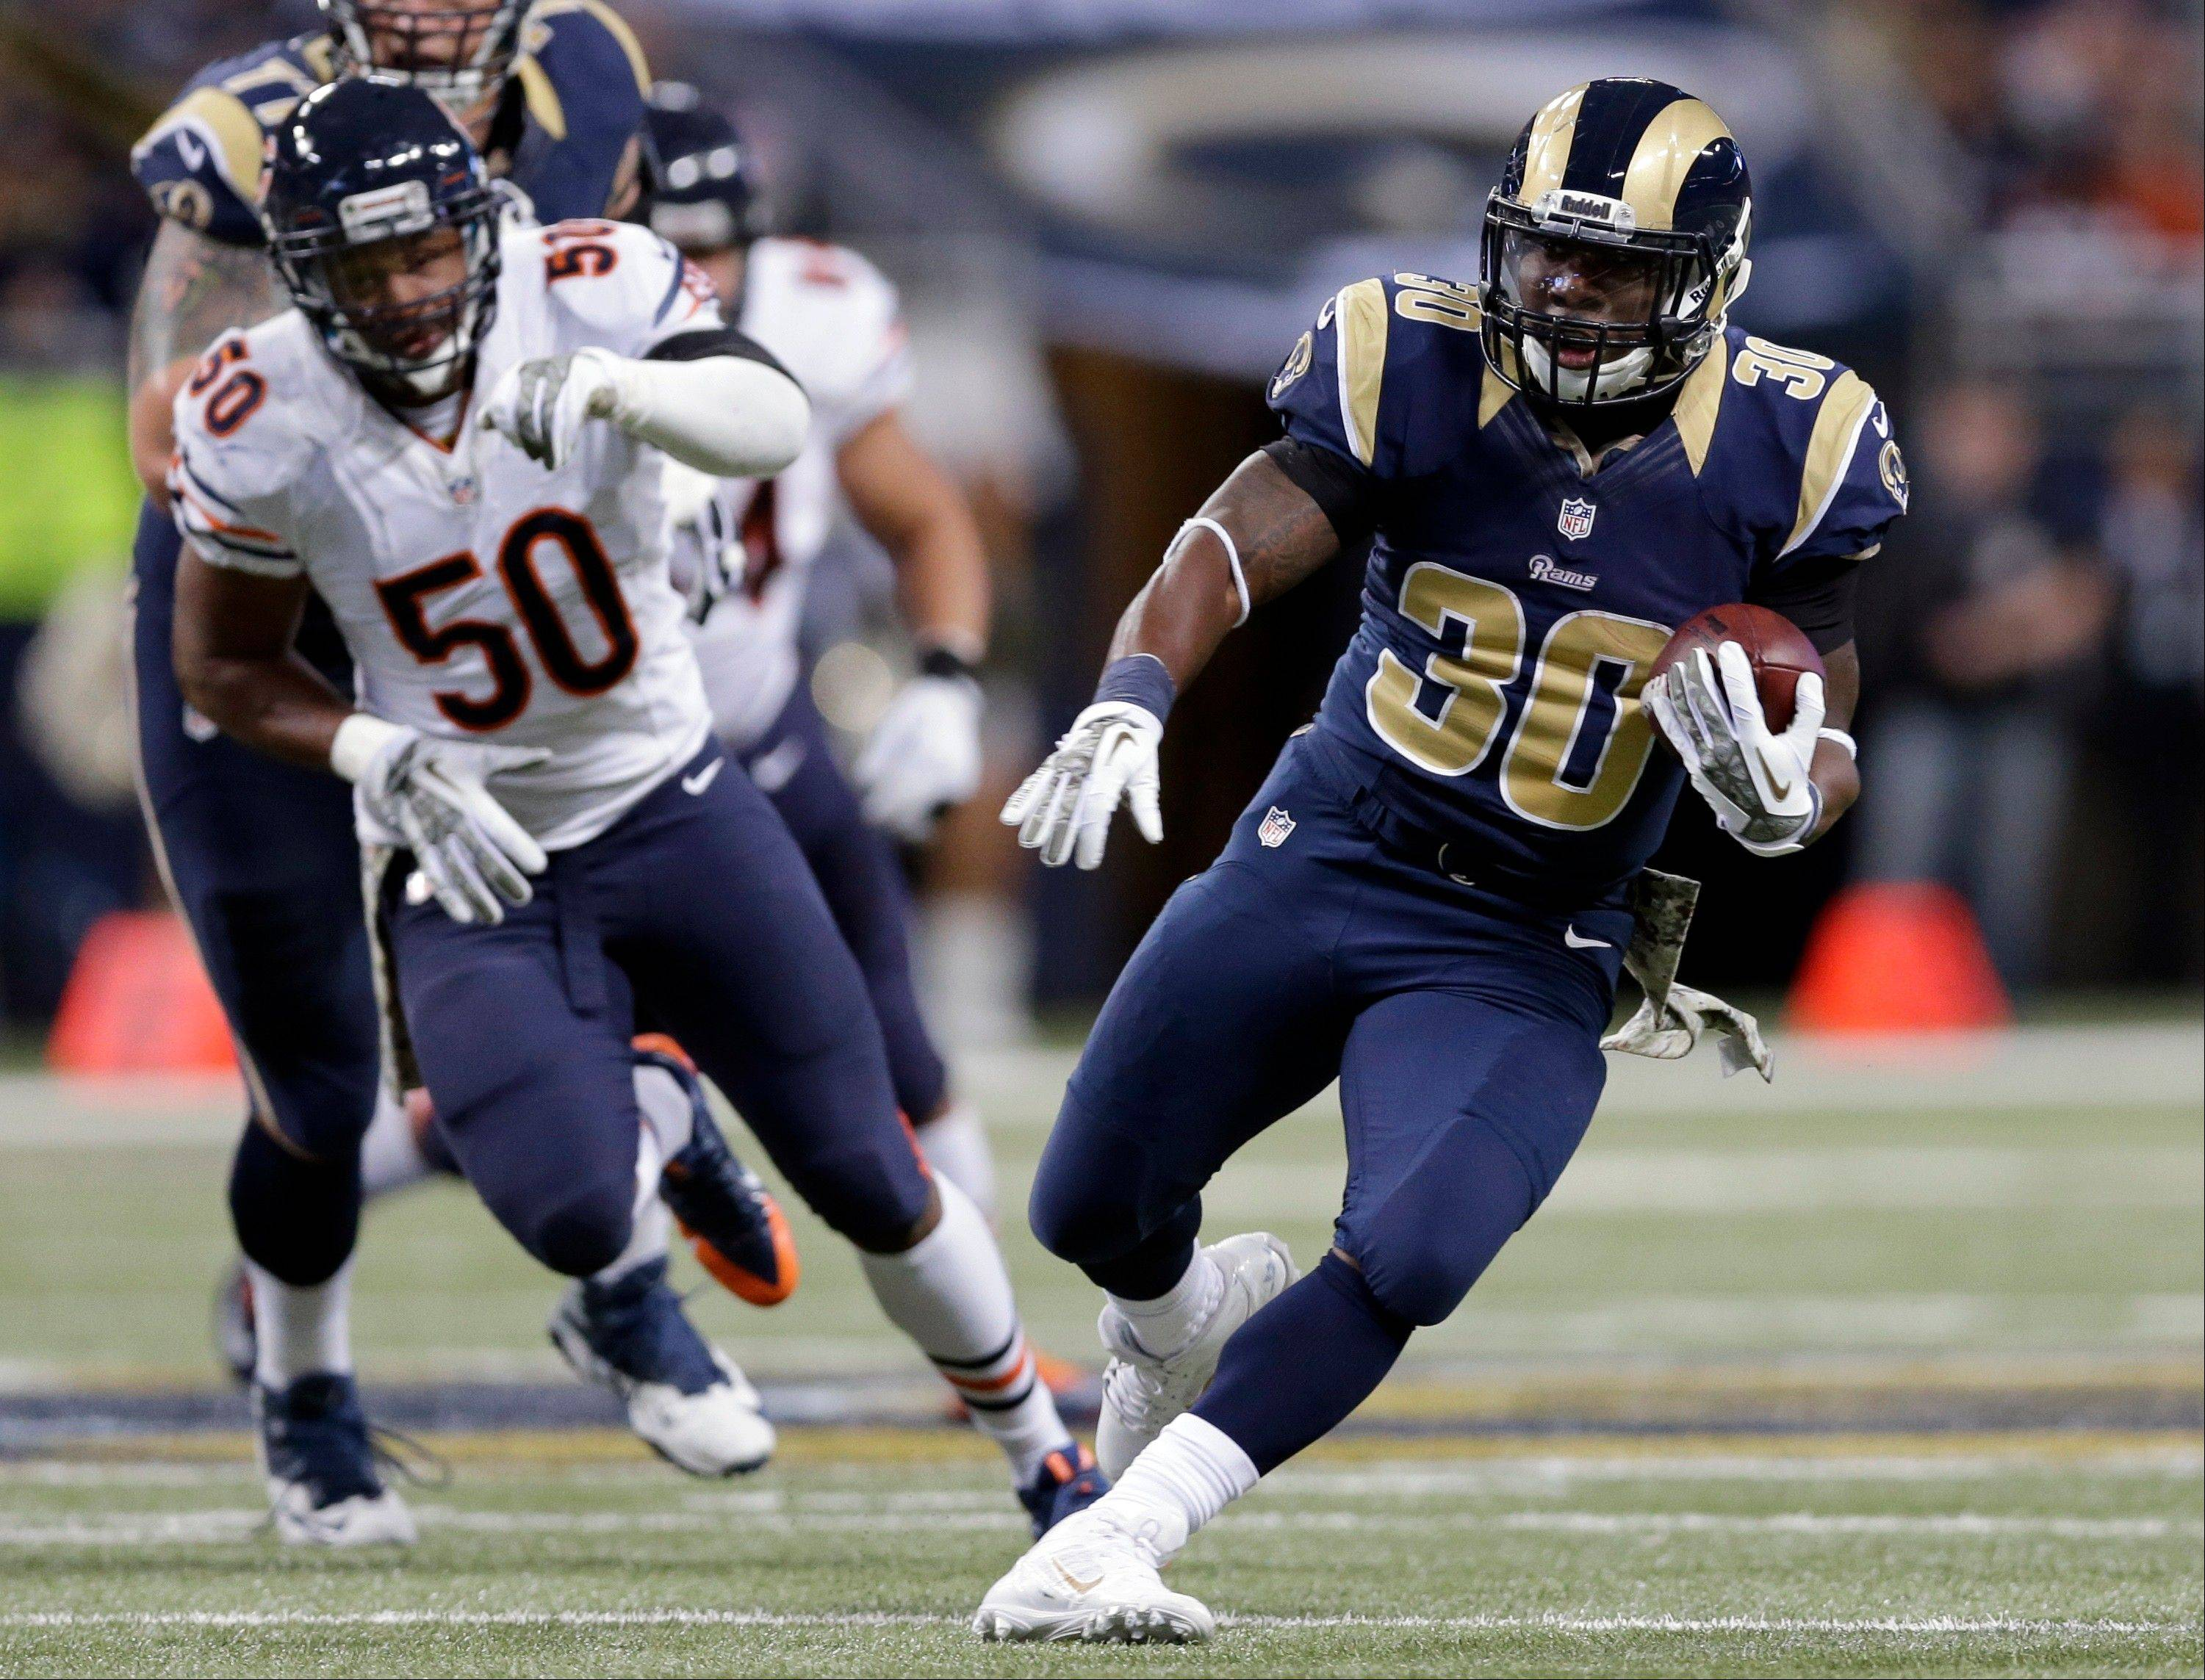 St. Louis Rams running back Zac Stacy, right, runs for a 35-yard gain as Chicago Bears linebacker James Anderson (50) pursues during the first quarter of an NFL football game on Sunday, Nov. 24, 2013, in St. Louis.